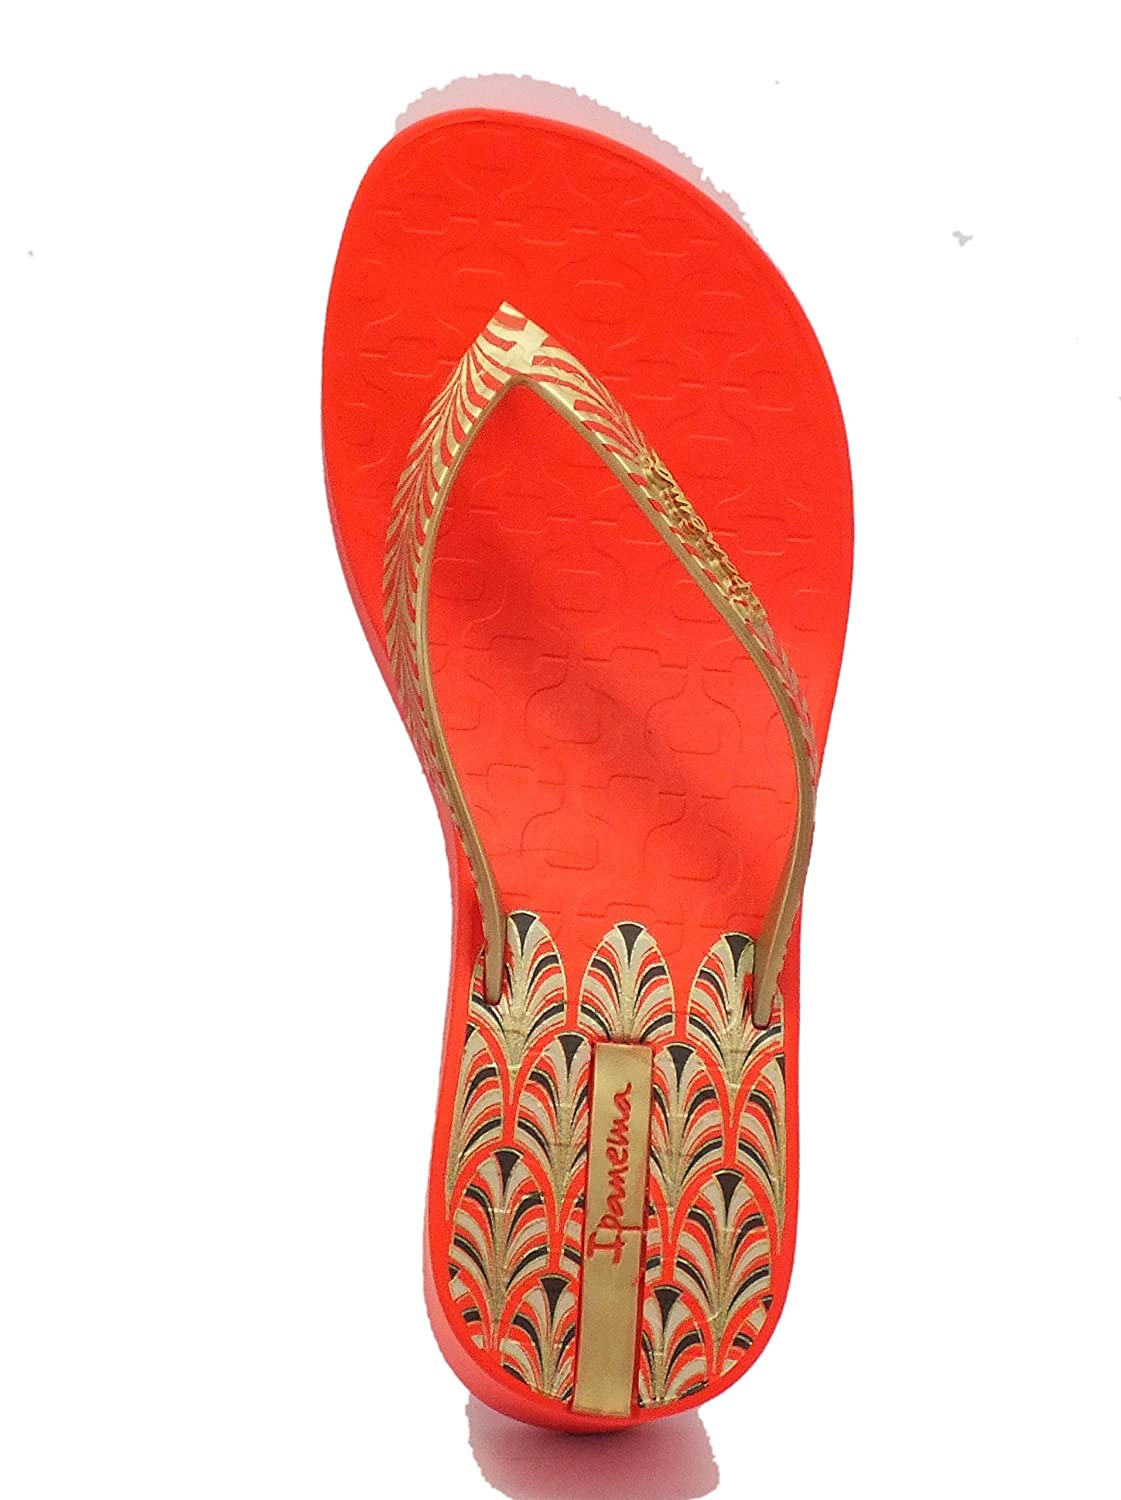 b88c1d6b56bdc5 Ipanema Women s 81466 Art Deco Fem Red Gold Thong Sandals Red Red Red Size   2 UK 3 UK  Amazon.co.uk  Shoes   Bags